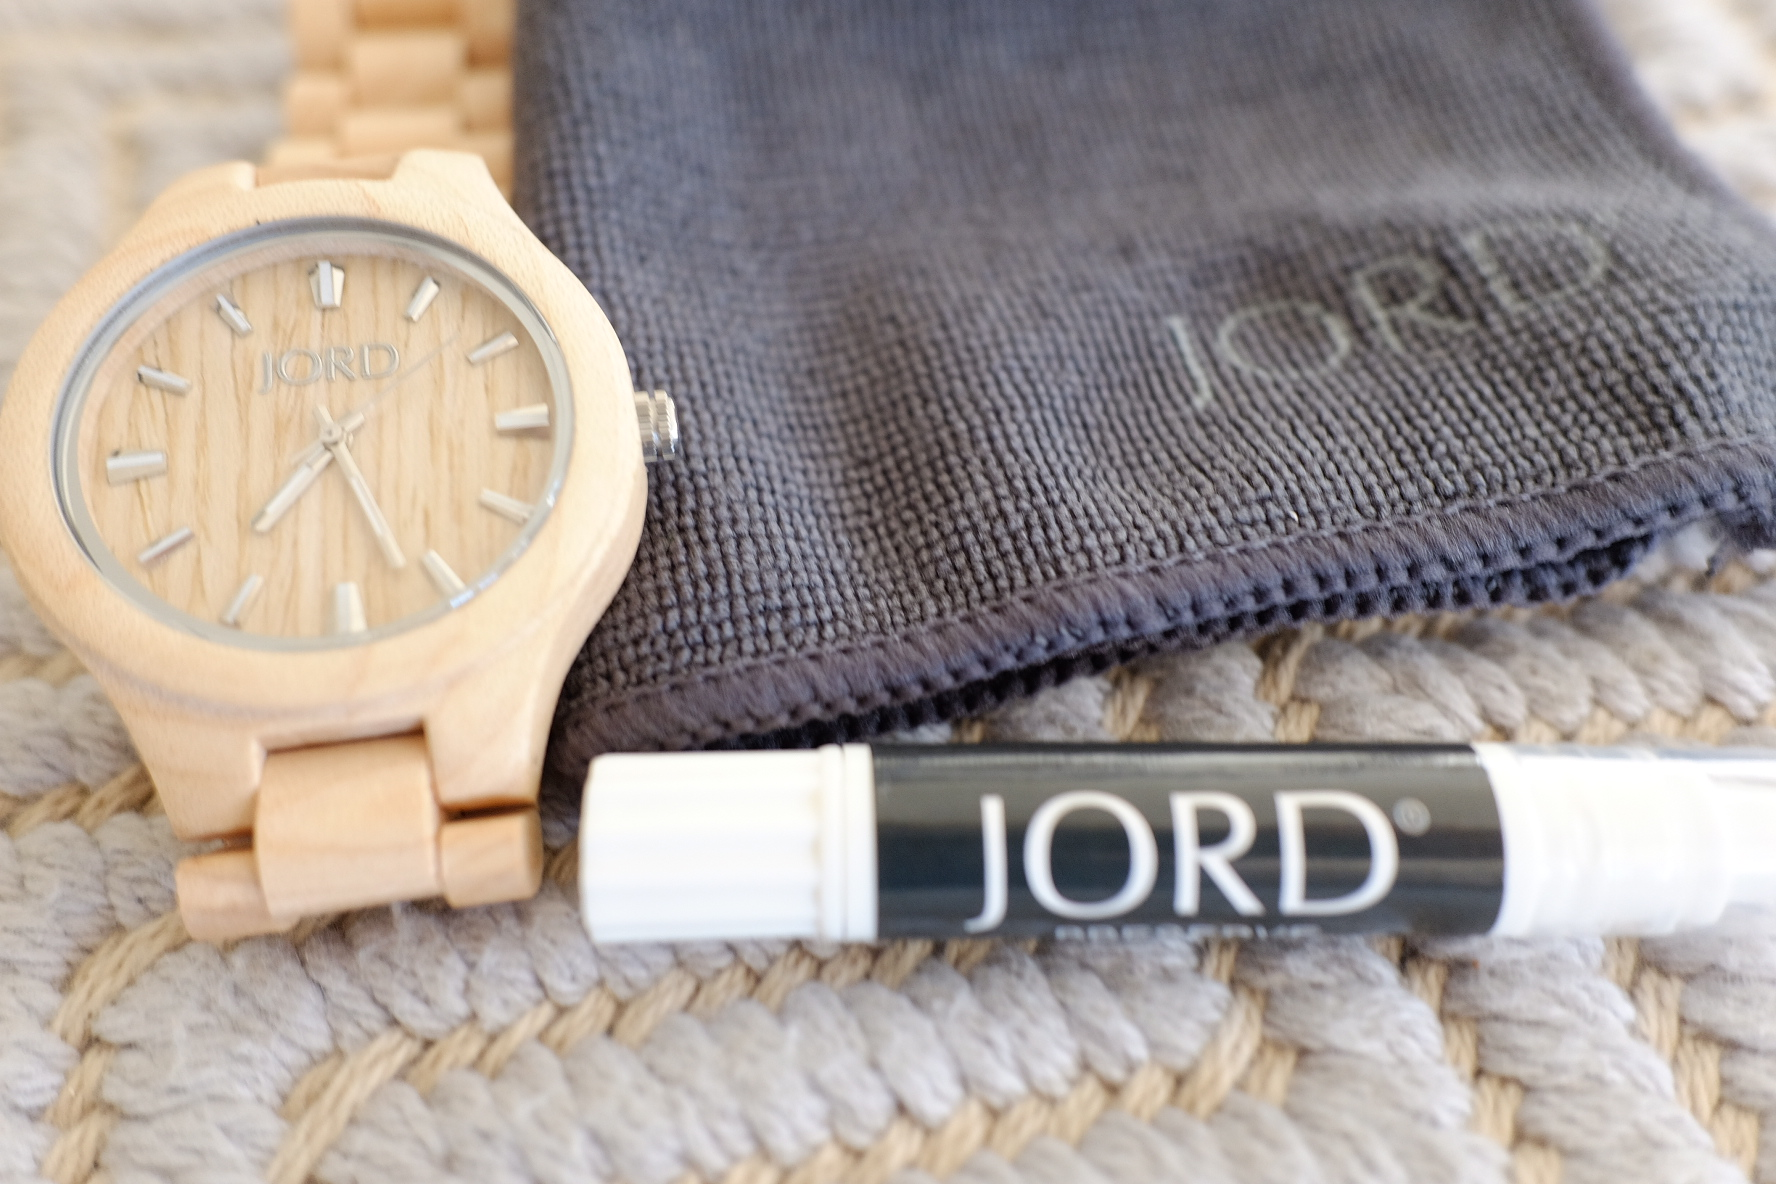 The  JORD watch  comes with Preserve Oil and a Cleaning cloth.